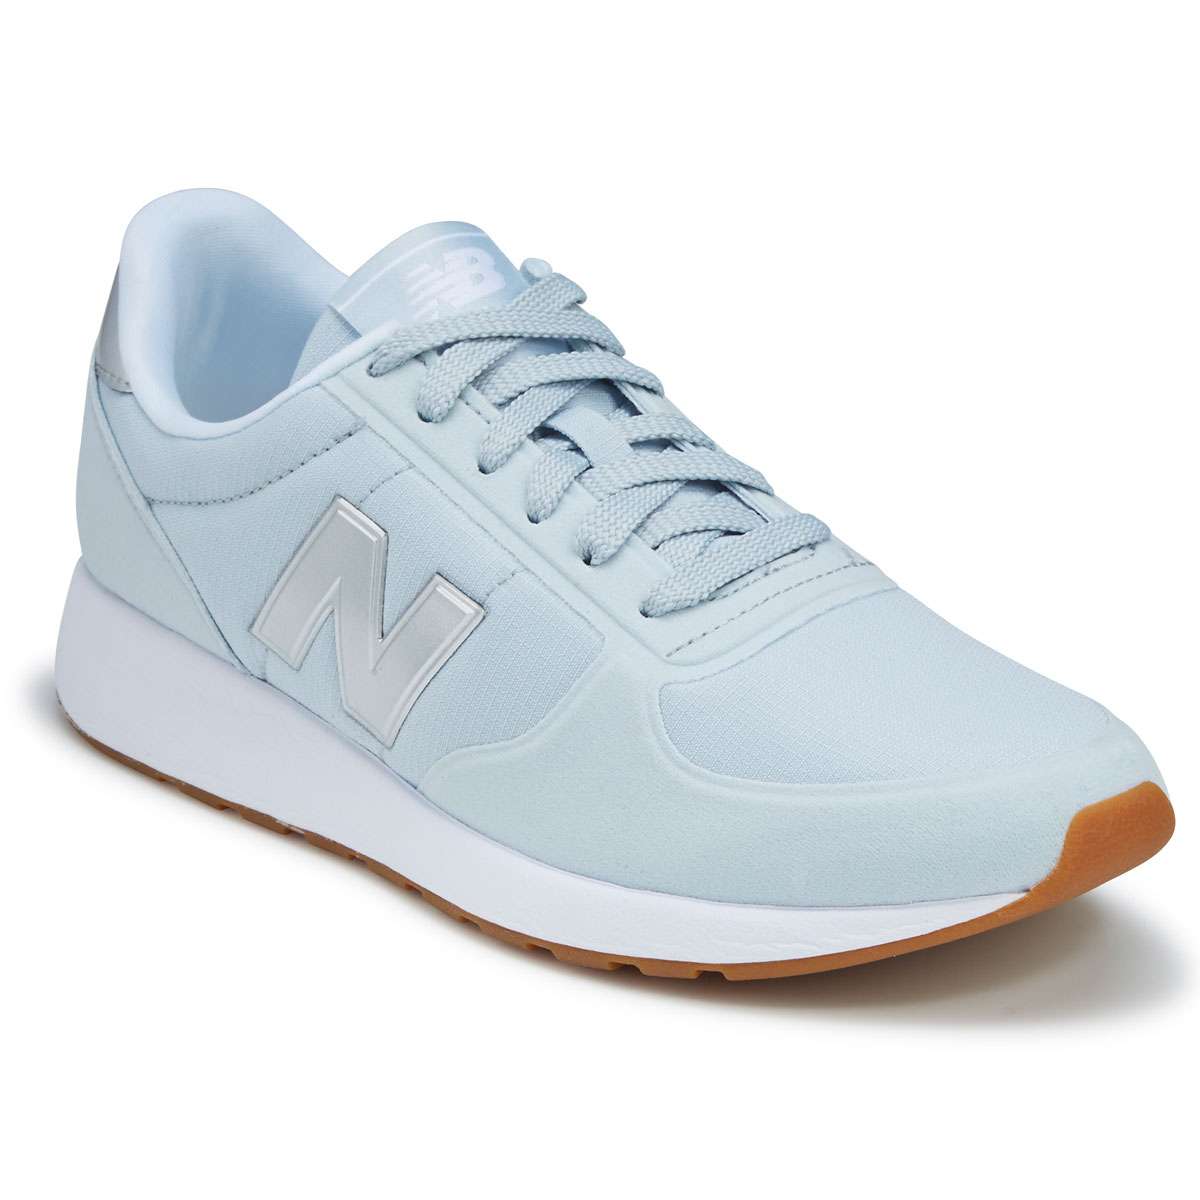 New Balance Women's 215V1 Sneakers - Blue, 6.5